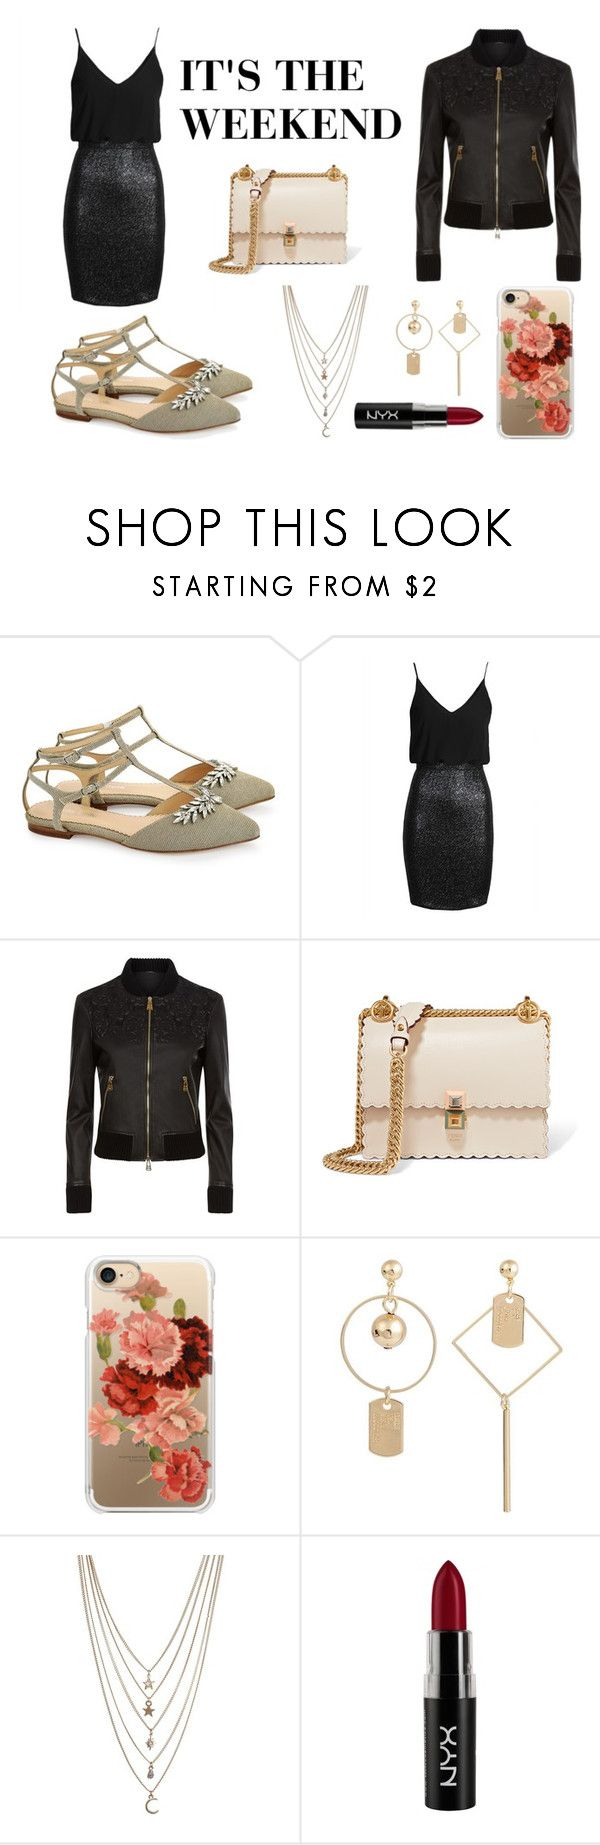 What better way to celebrate the weekend than to rock some slick black cami velvet dress and a black leather jacket for the Fall cold. For accessories, add Bella Belle's fancy dressy comfortable gold flat sandals with embellished silver crystals and an ankle strap, Fendi's white bad, Nyx's red lipstick, a floral case, and some gold jewelry.  #polyvore #polyvorefashion #fallfashion #fall2017